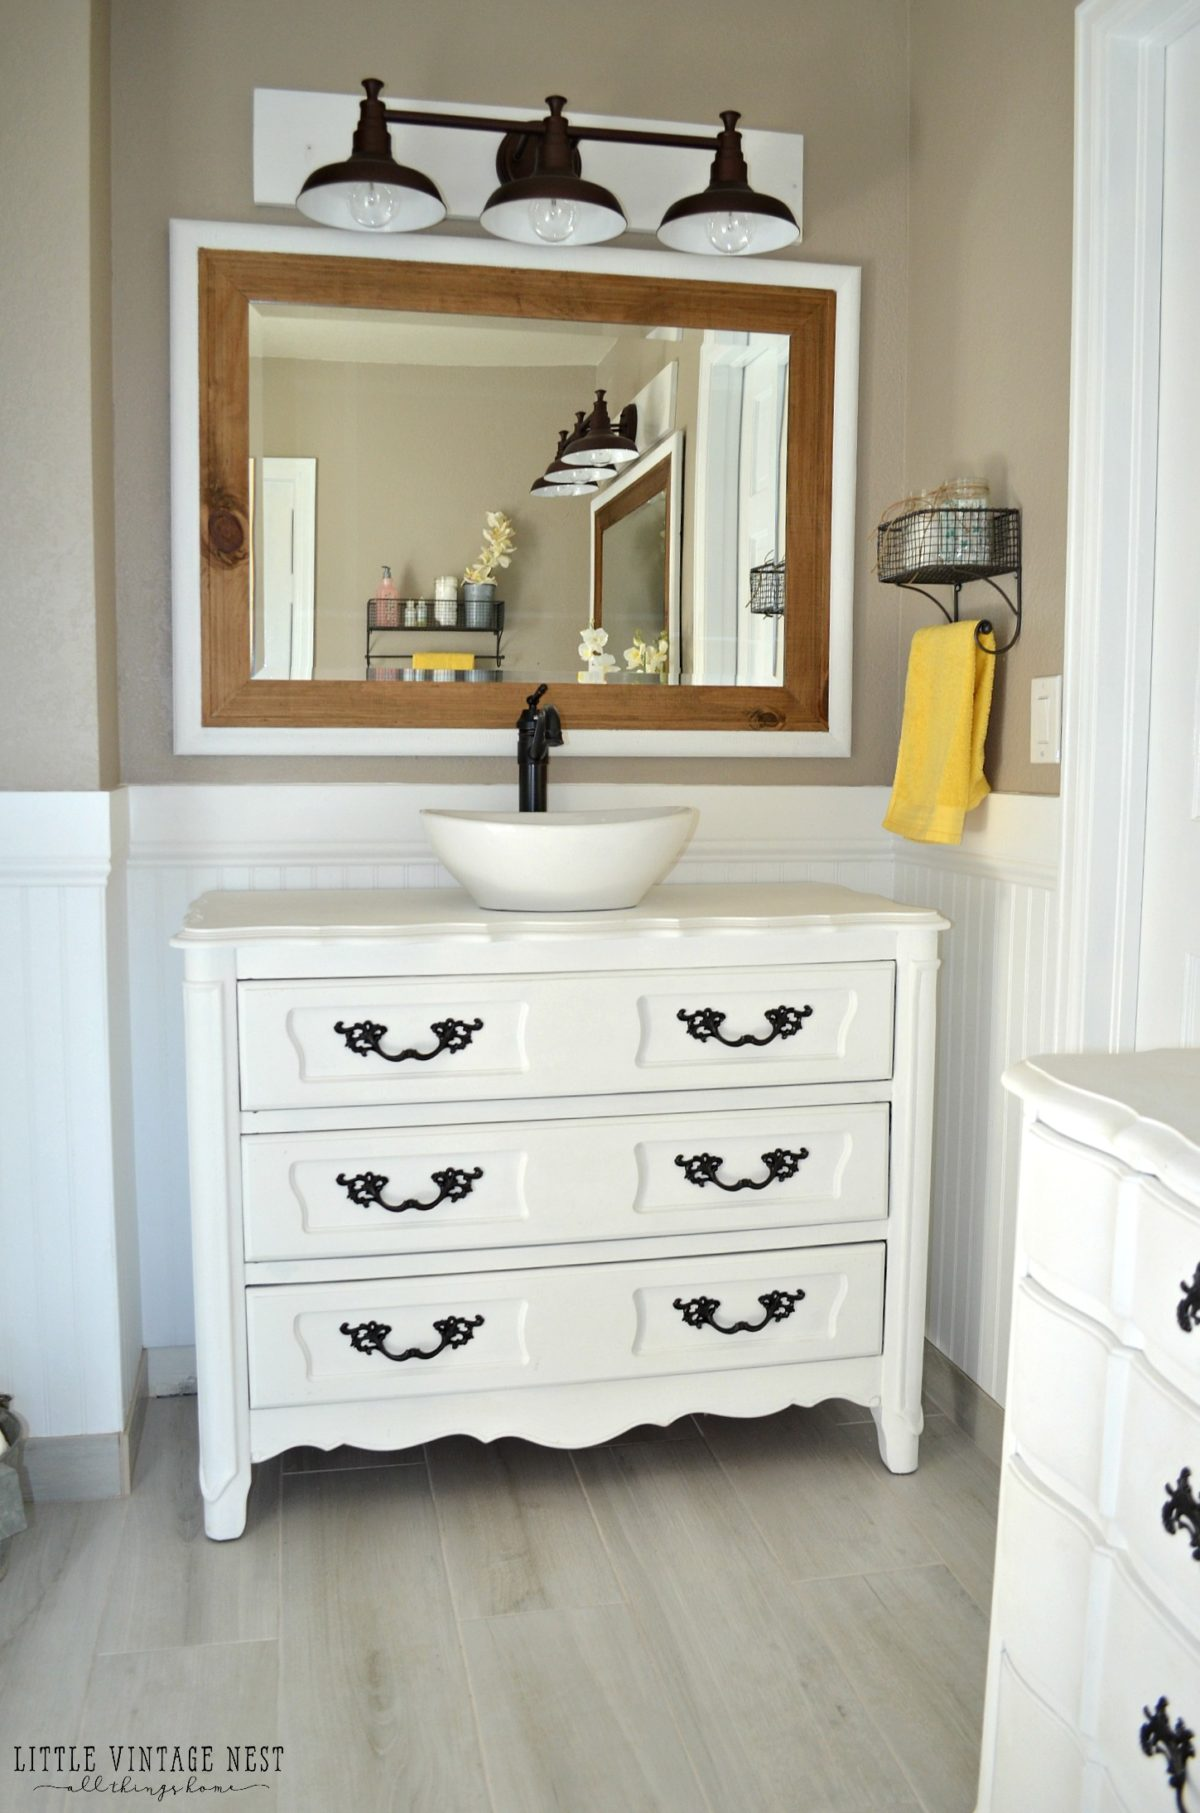 Step by step tutorial to turn an old dresser into bathroom vanity